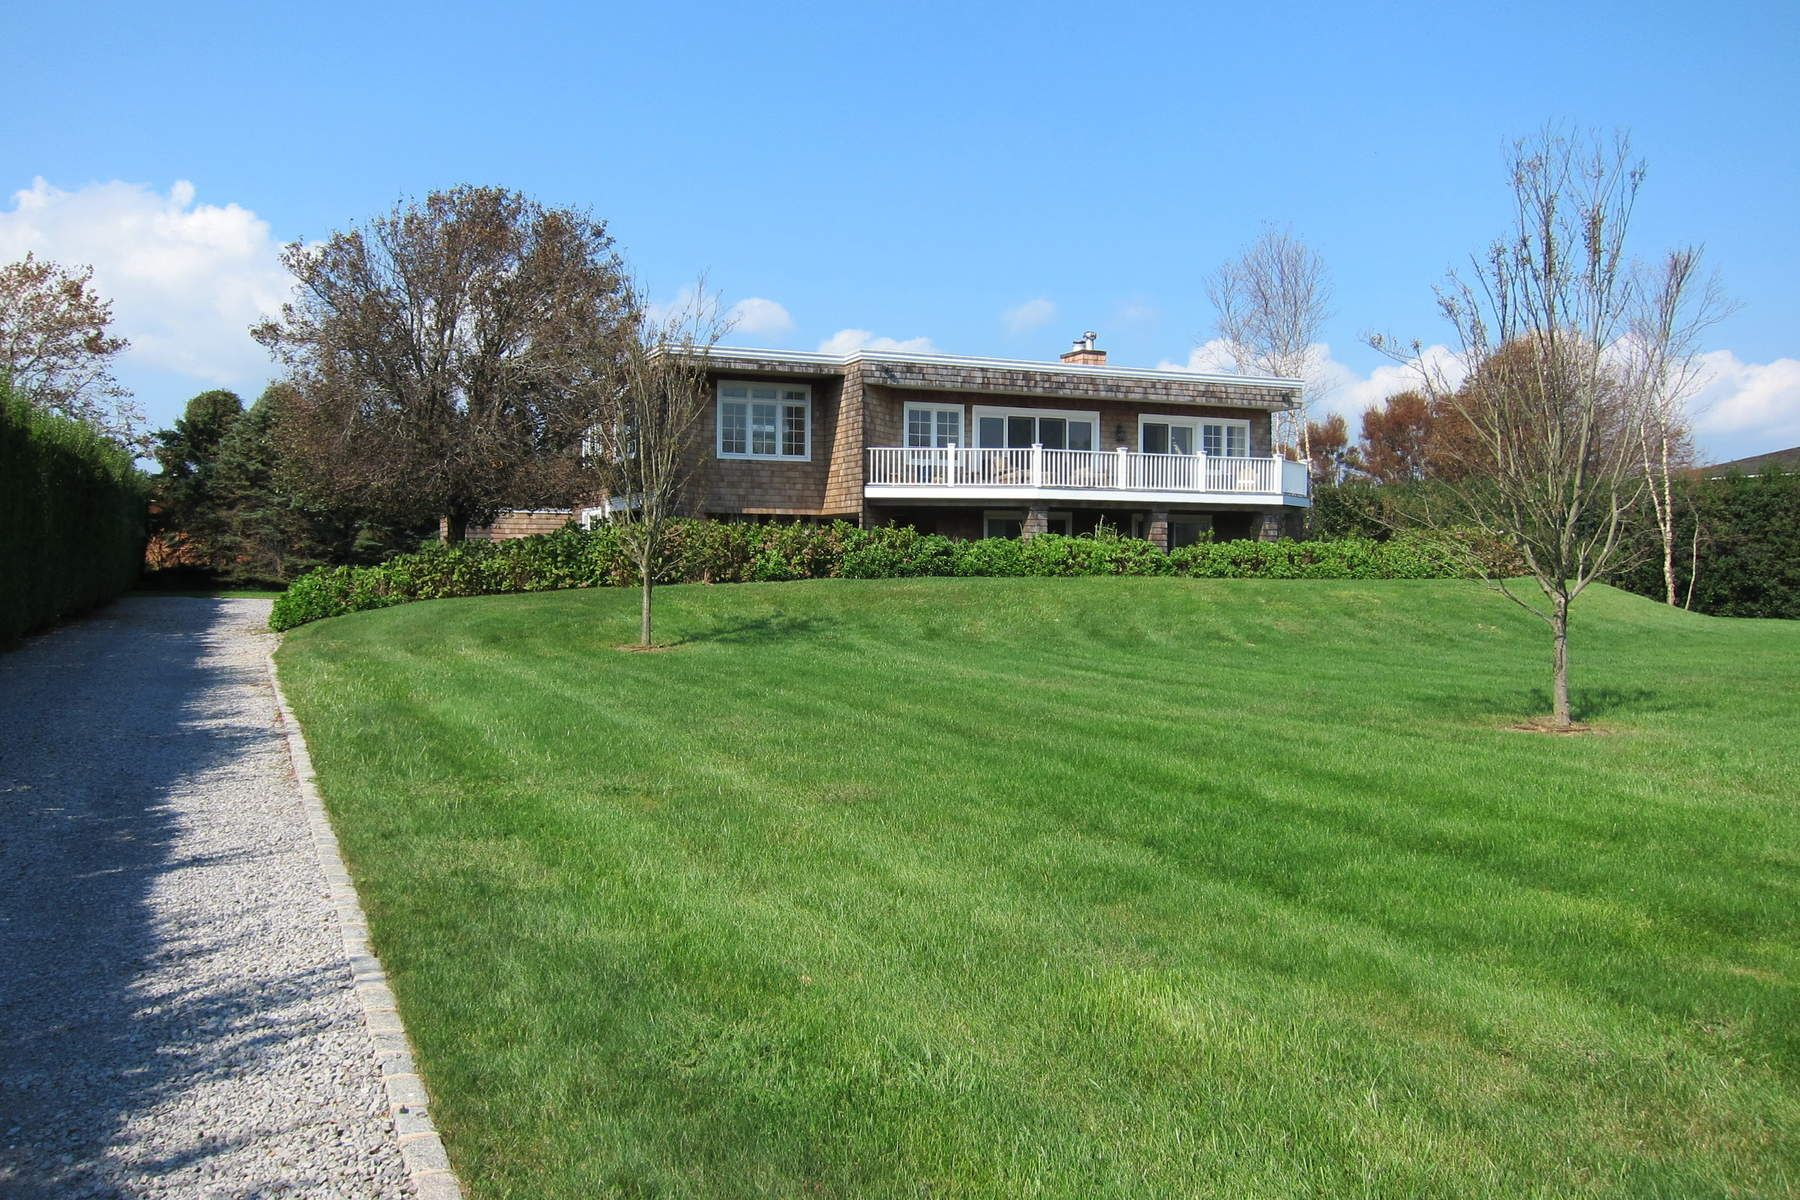 Single Family Home for Rent at South Of The Highway Bridgehampton, New York 11932 United States